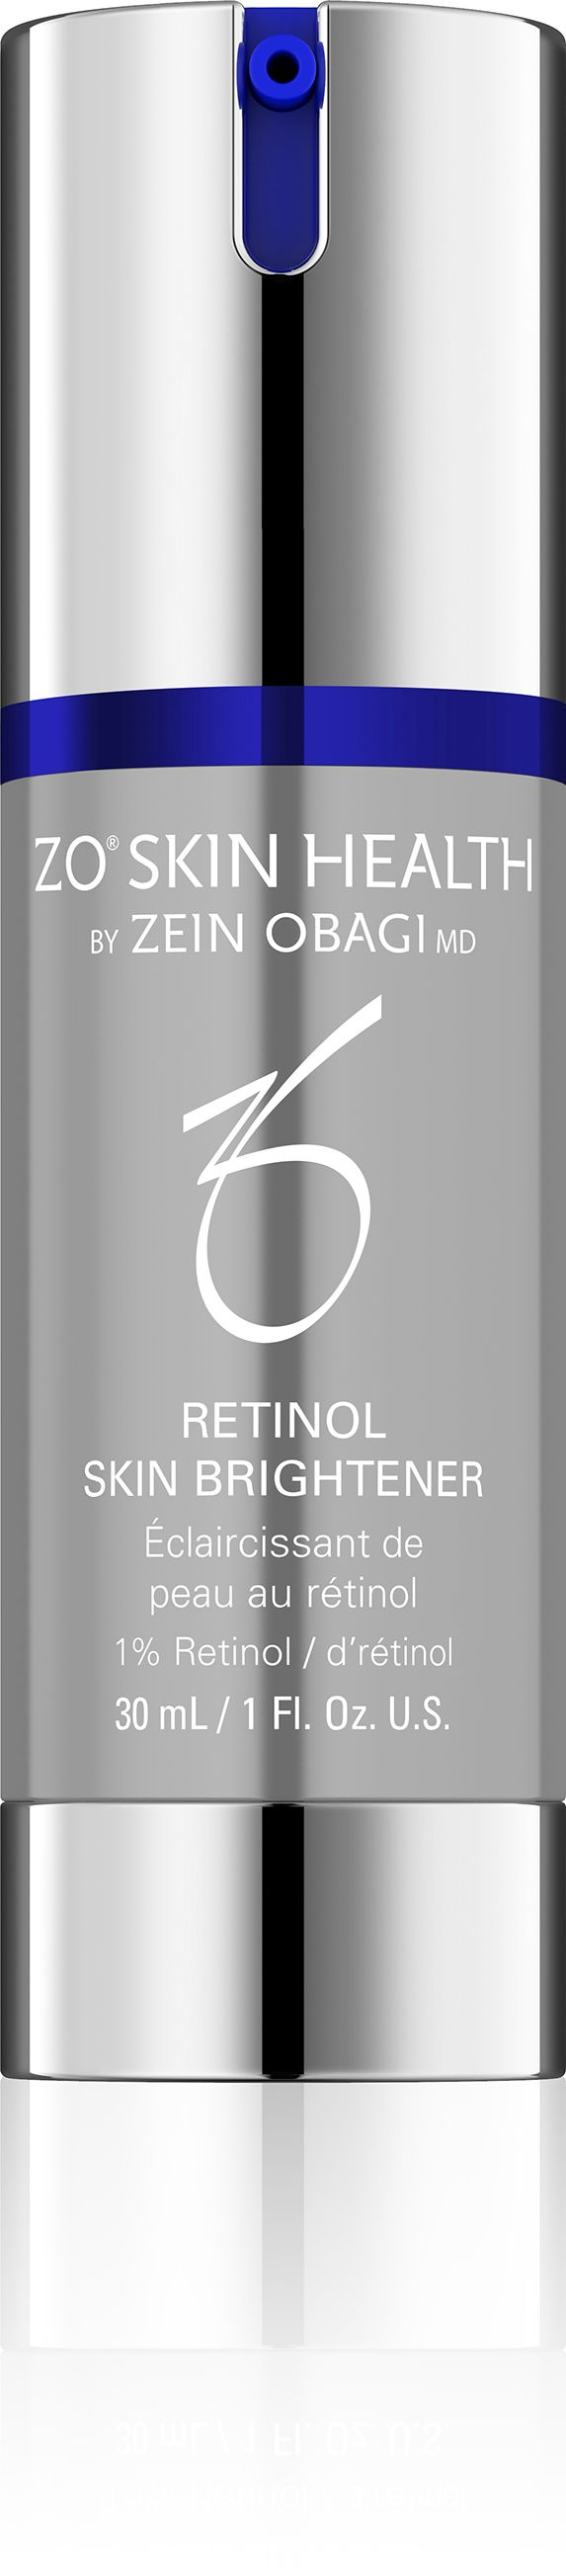 ZO Retinol Skin Brightener 30mL